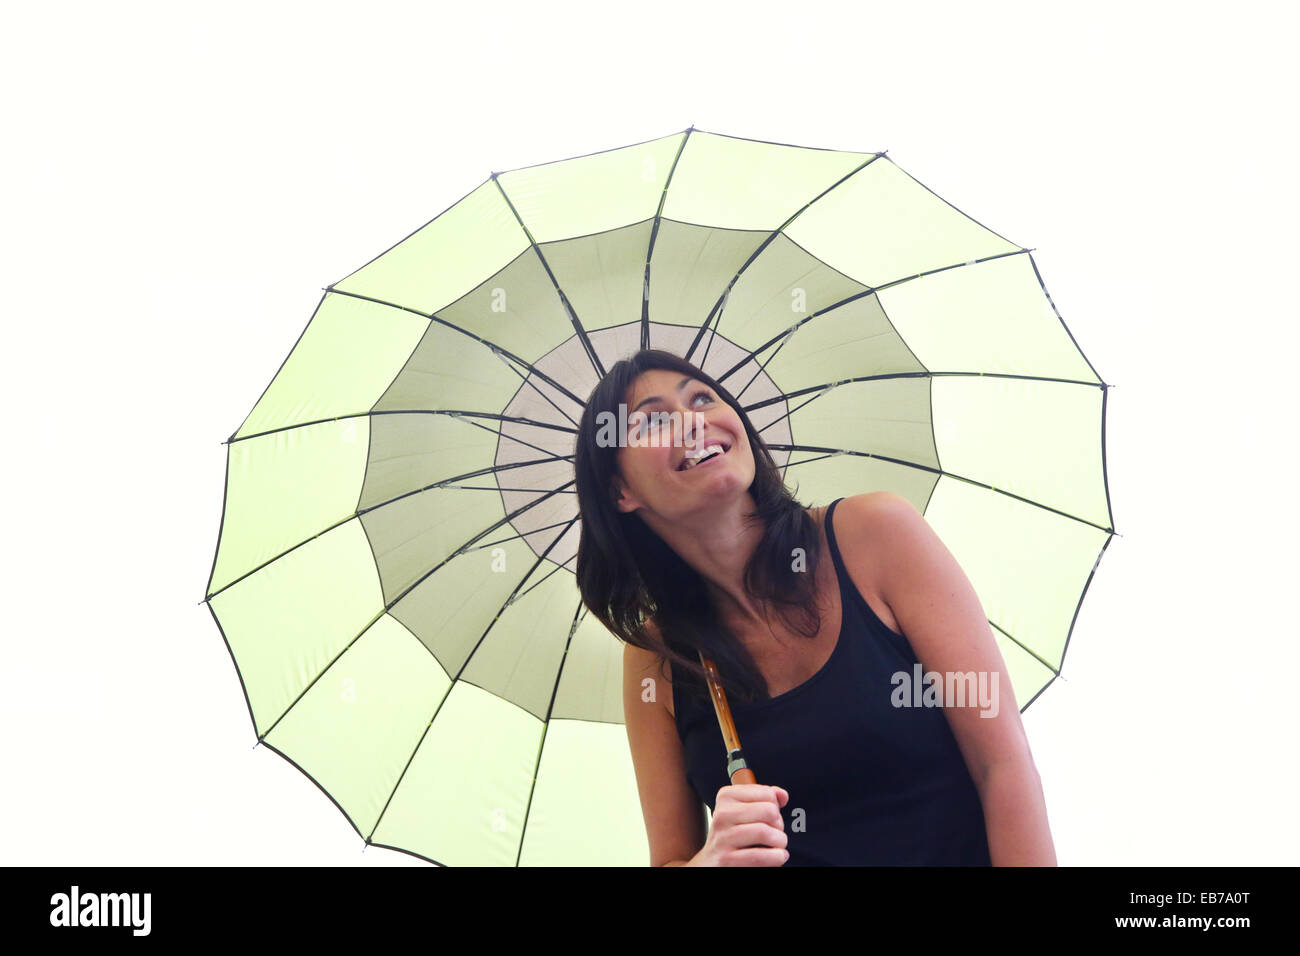 35 year old woman with umbrella. - Stock Image